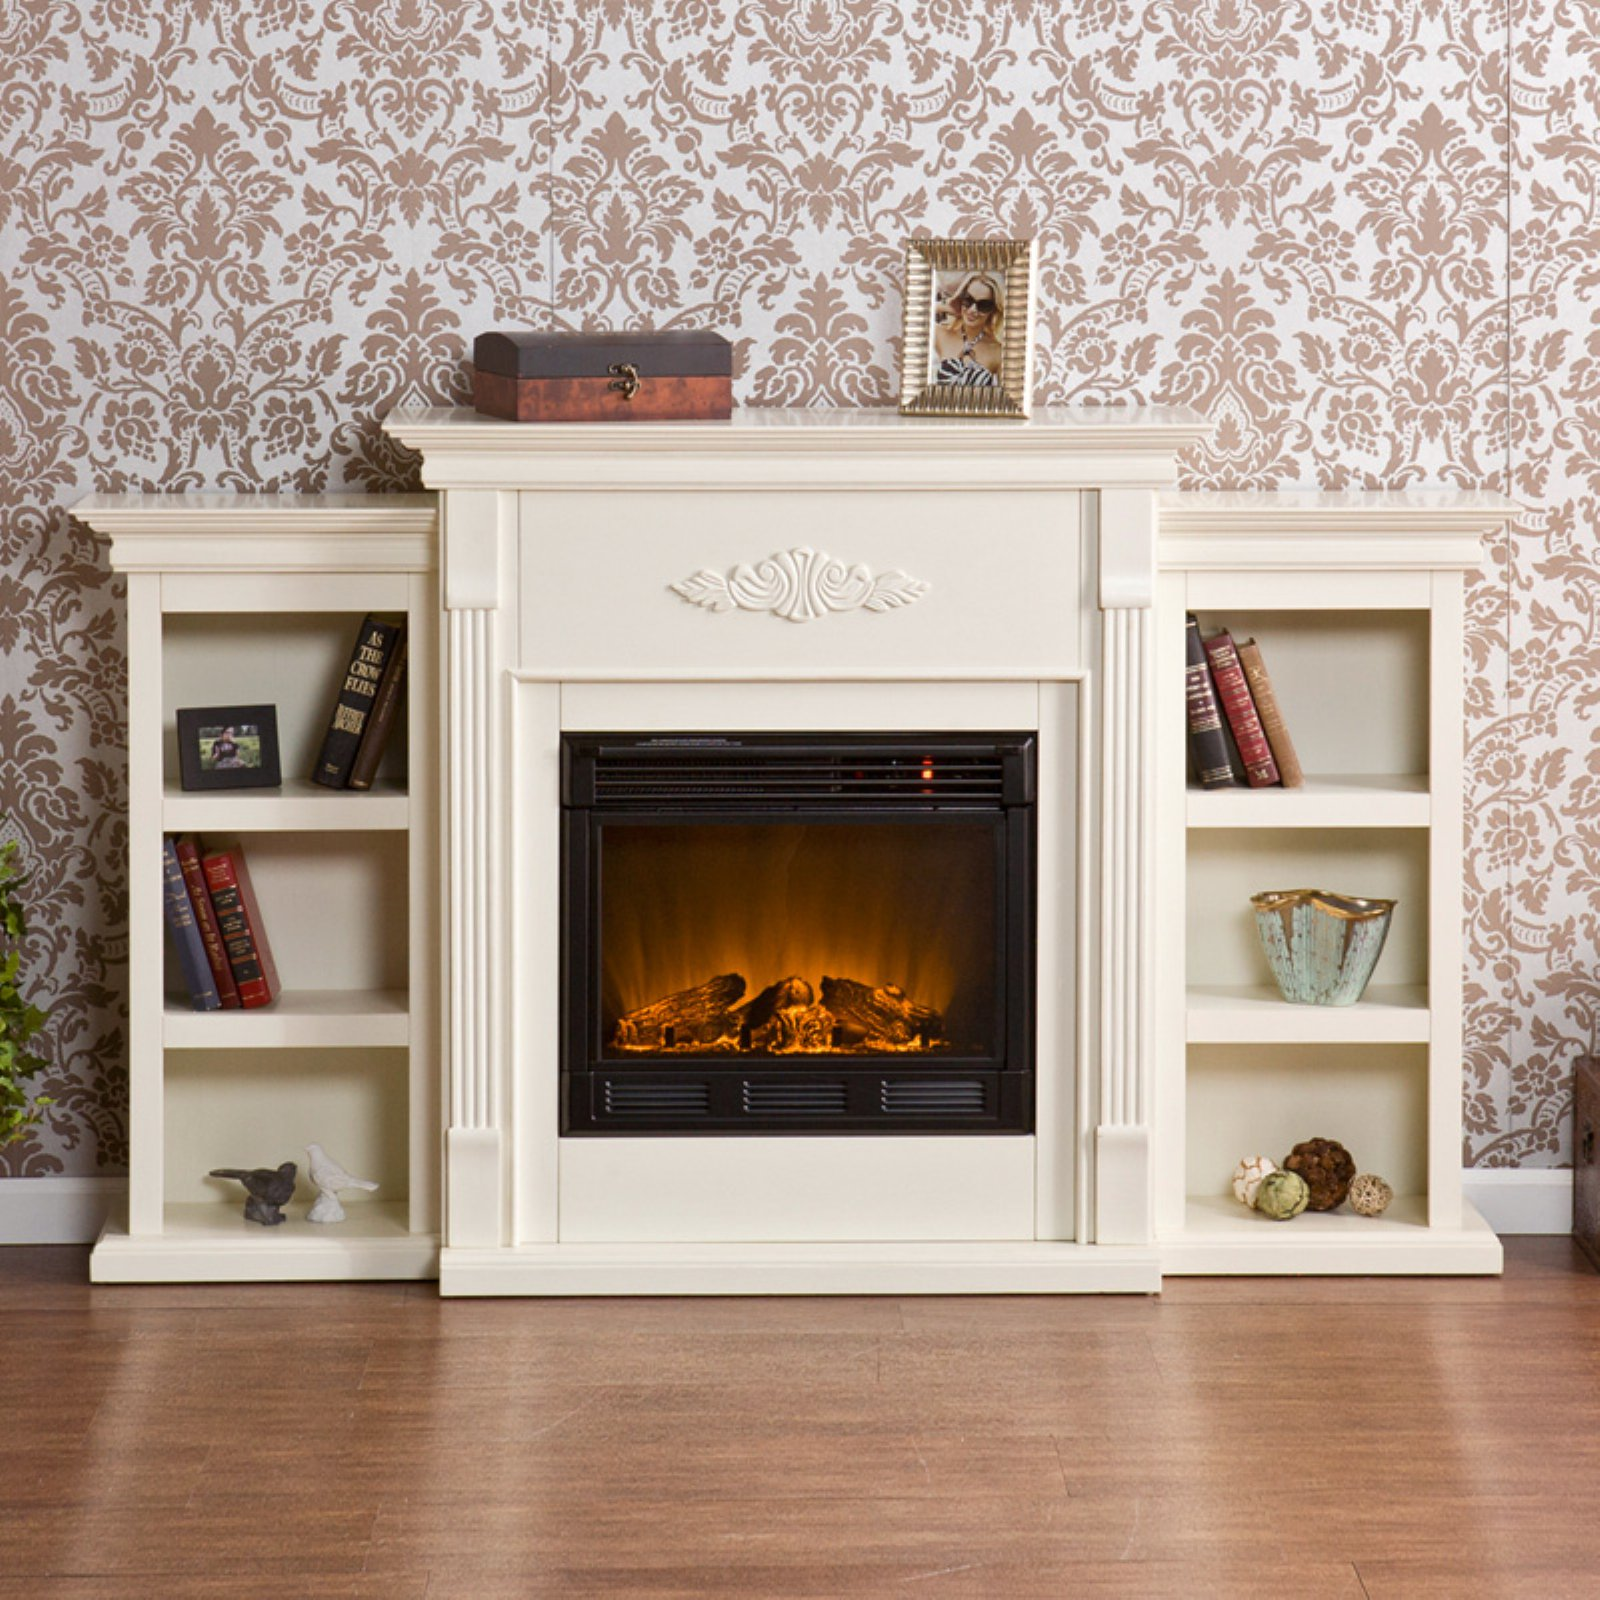 Tennyson Bookcase Electric Fireplace Southern Enterprises Tennyson Ivory Electric Fireplace With Bookcases